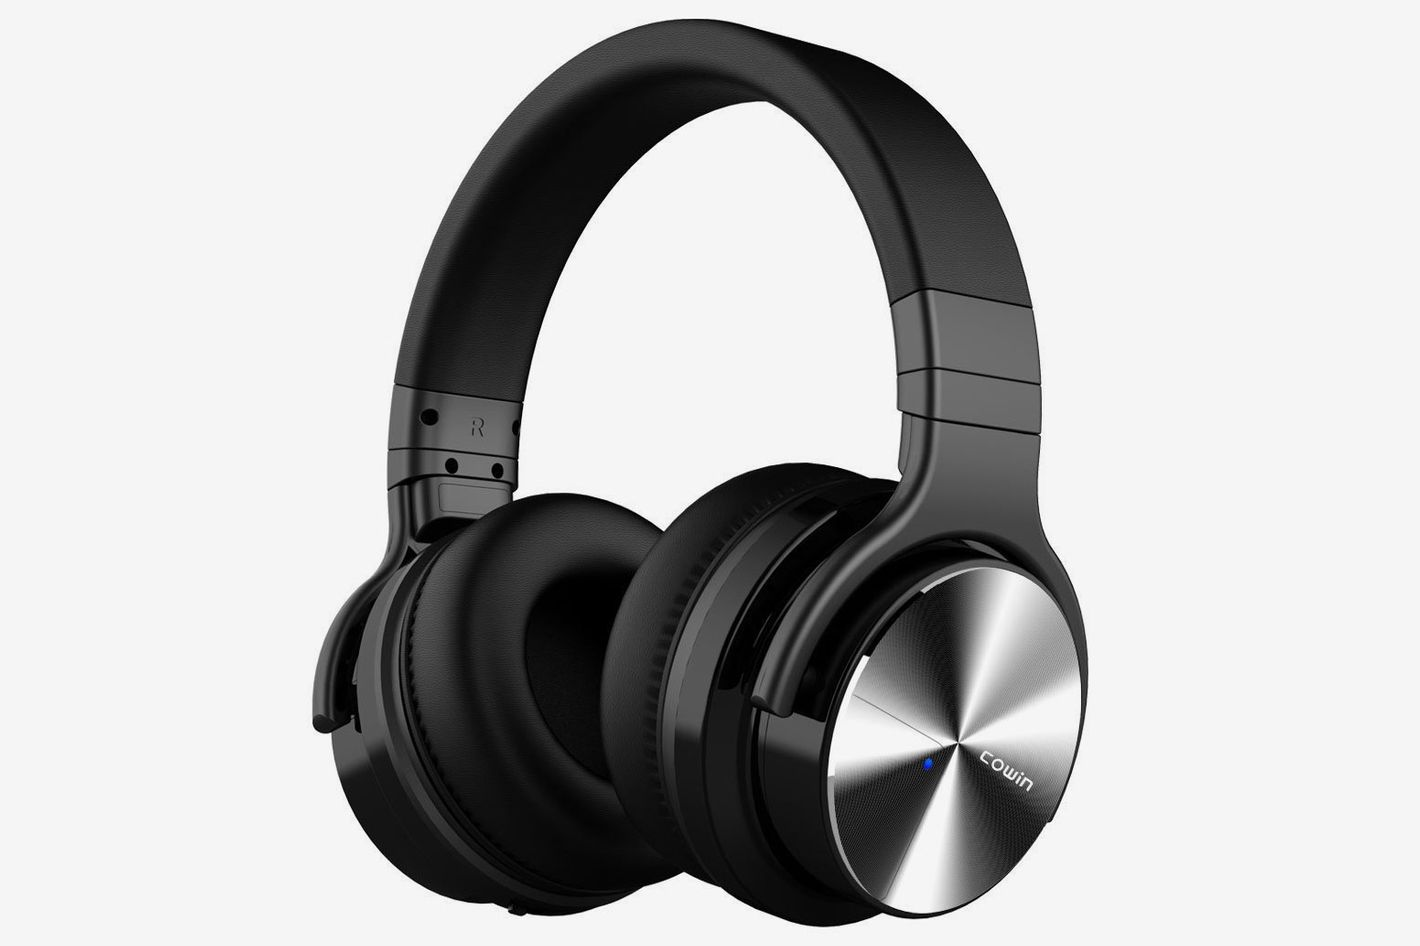 8 Best Noise Canceling Headphones On Amazon Reviewed 2018 Building Cowin E7 Pro Upgraded Active Cancelling